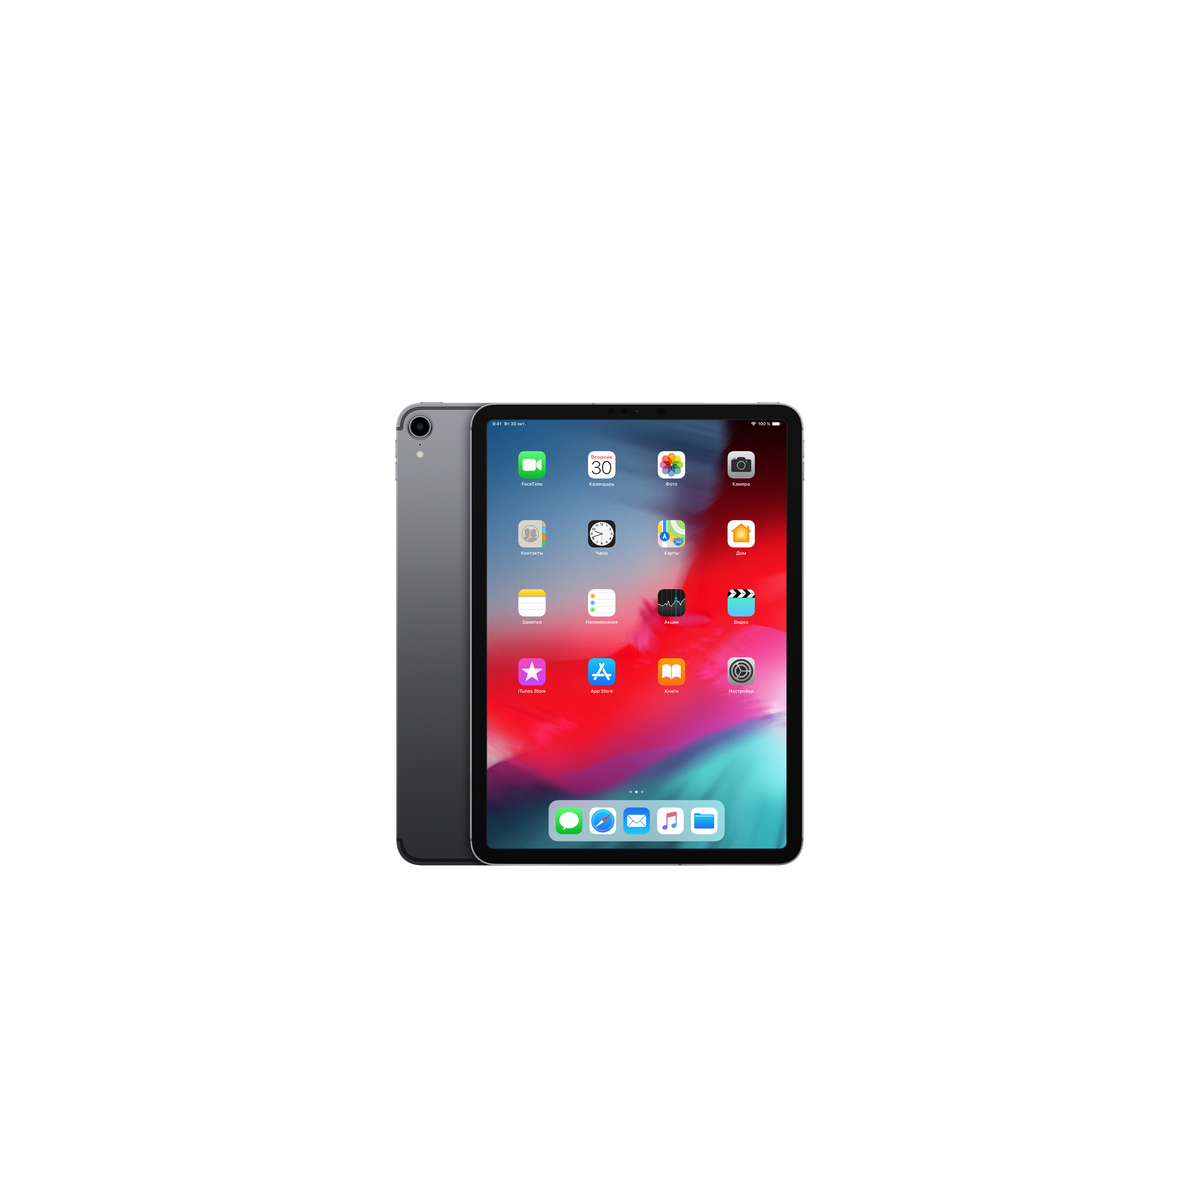 Apple iPad Pro 11 2018 Wi-Fi + LTE 64GB Space Gray